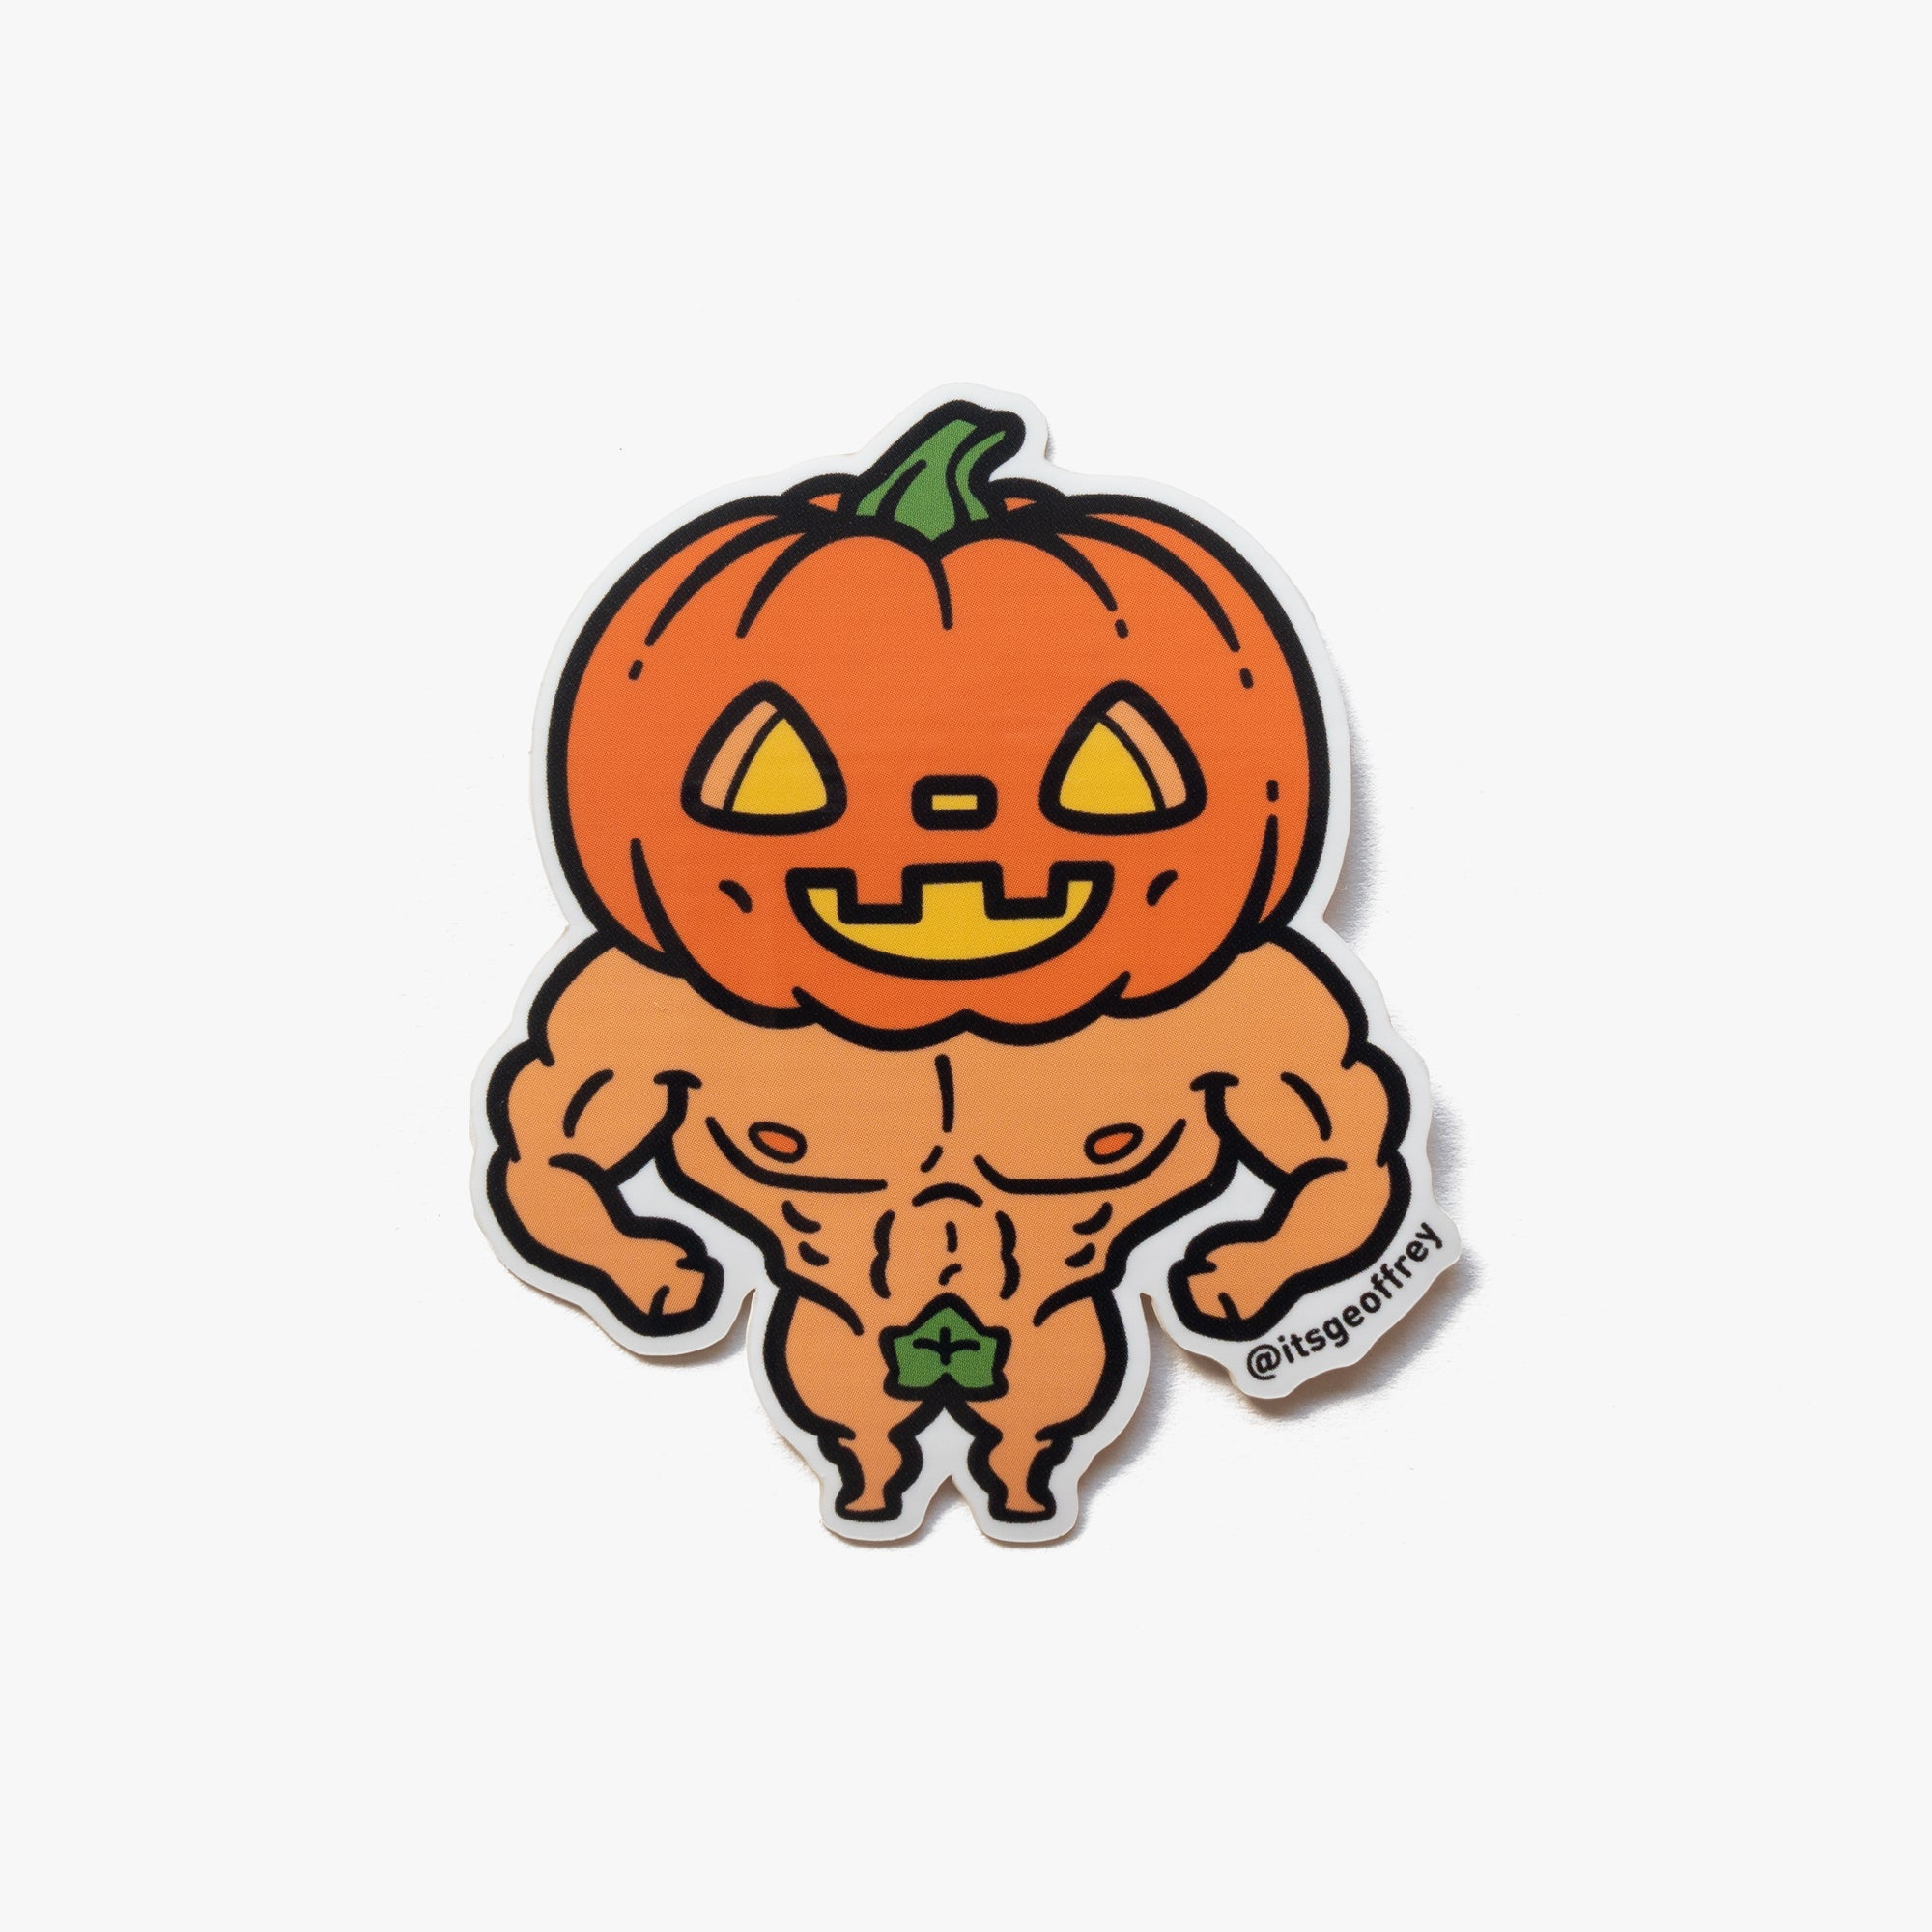 Jacked-o-Lantern Sticker